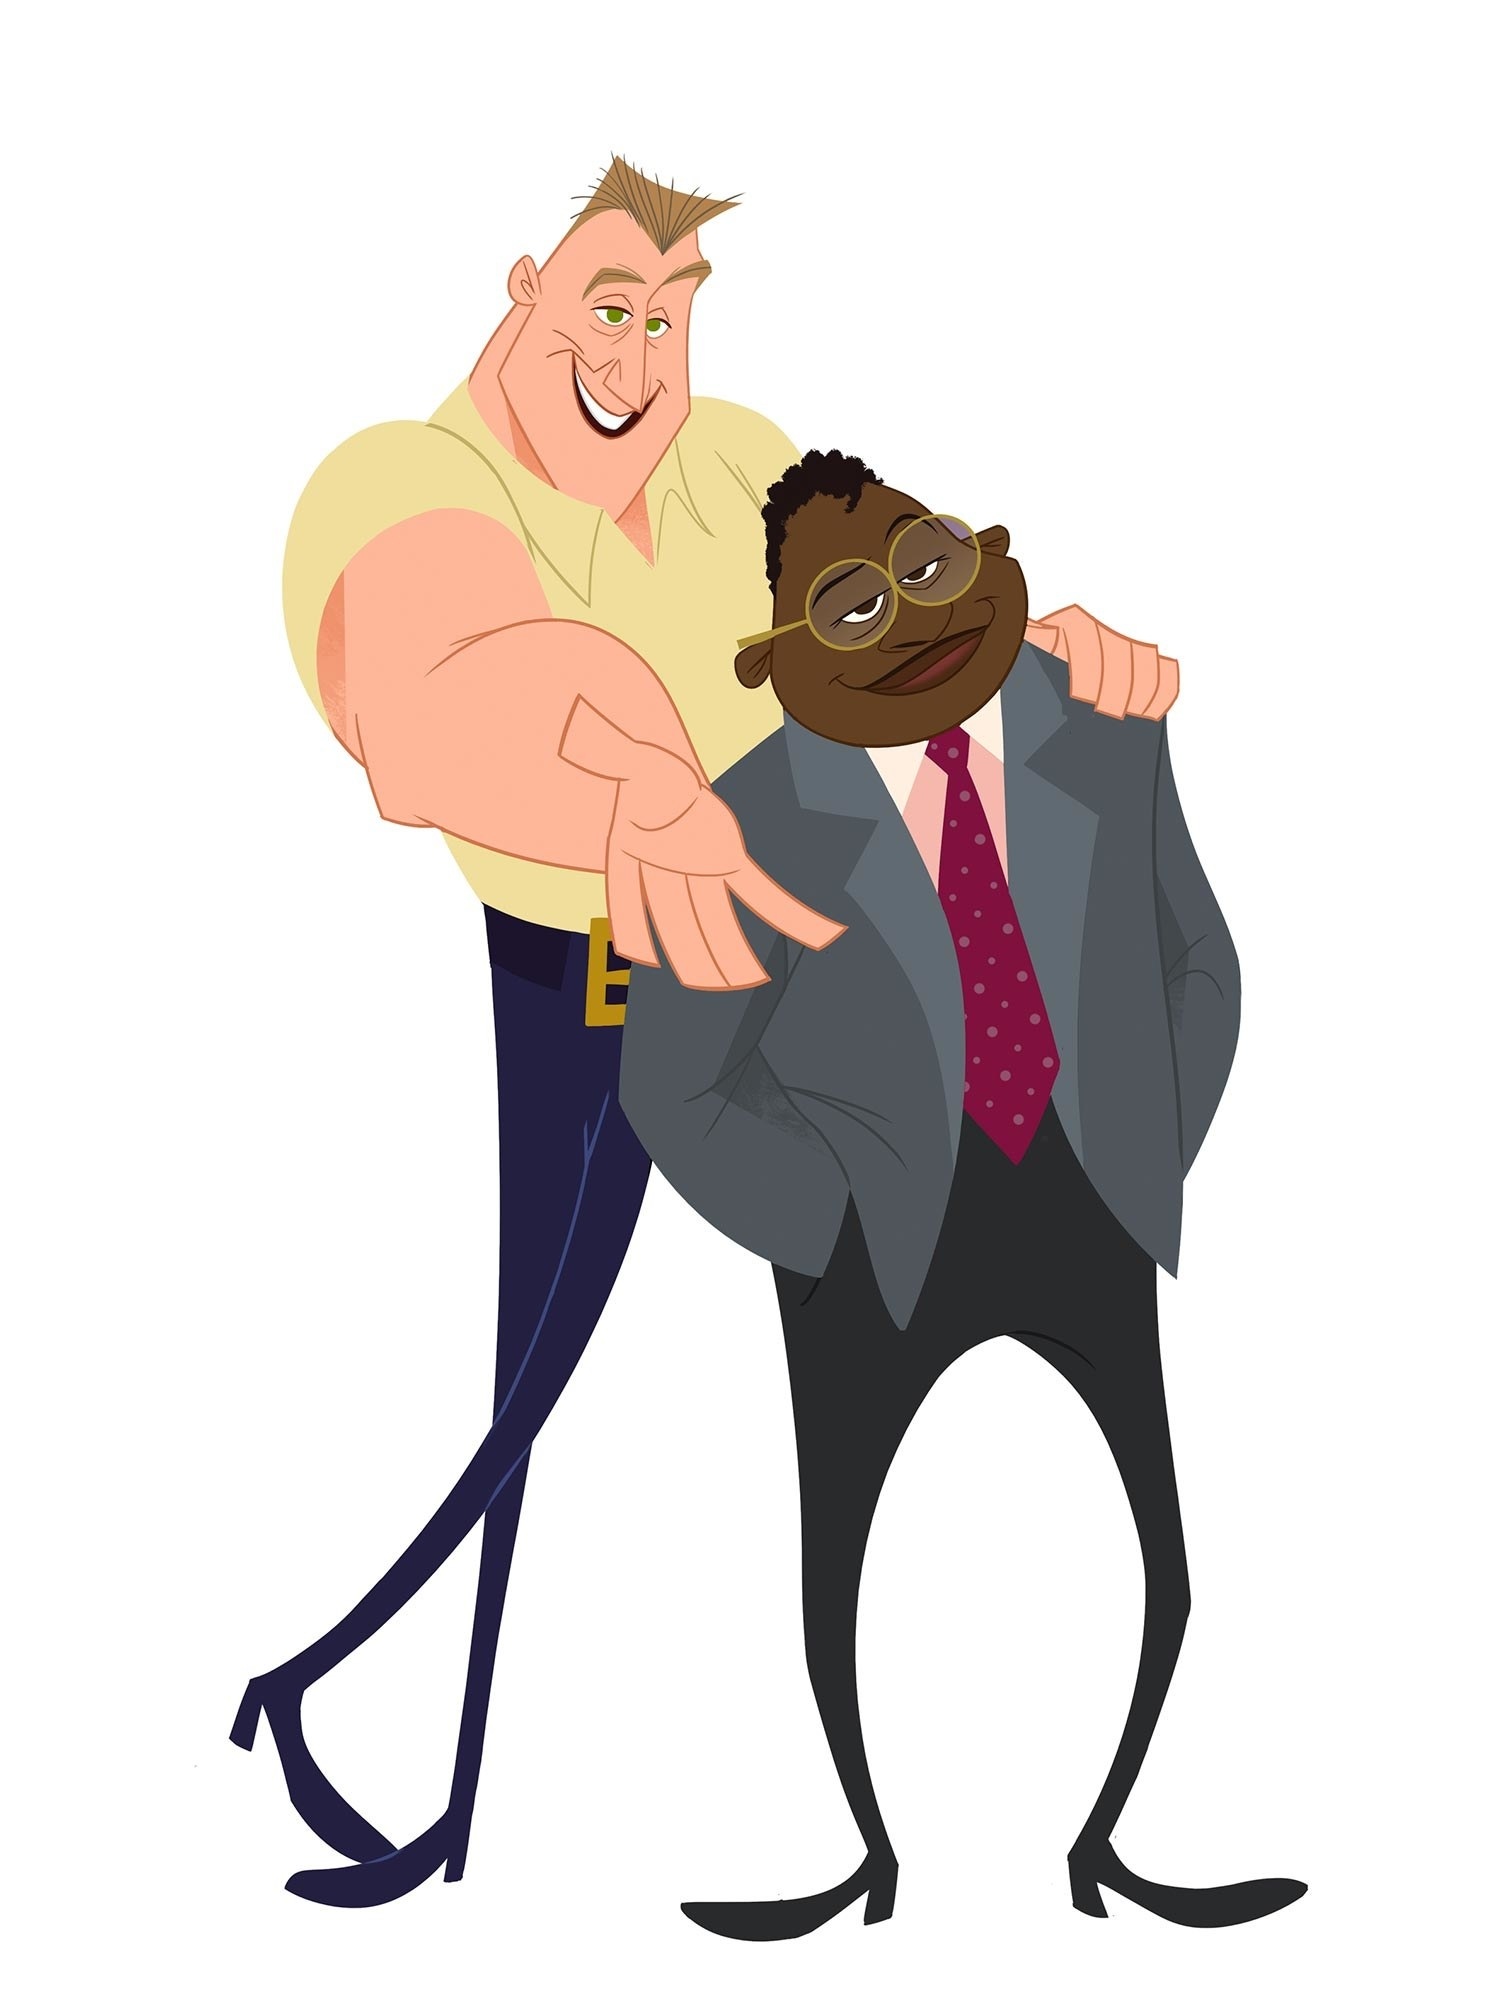 Billy porter's animated character Randall on the proud family